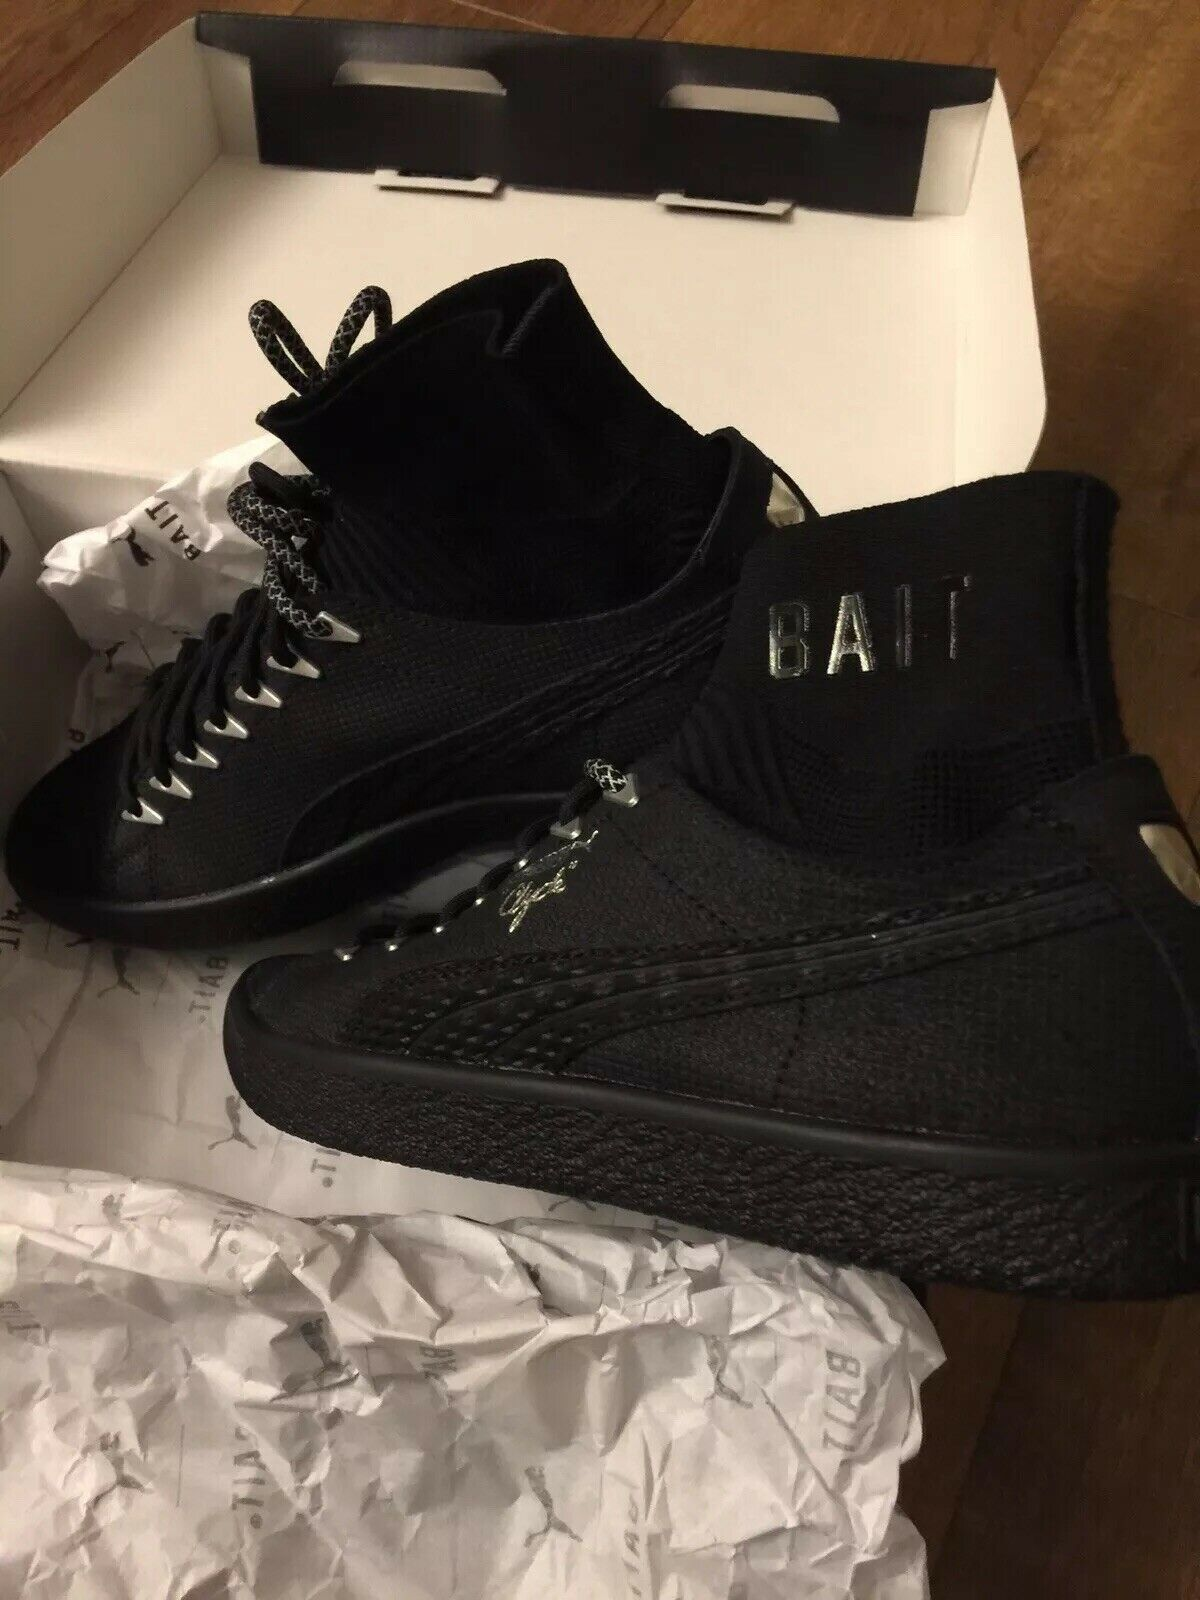 SDCC PUMA Clyde Sock Black Panther BAIT Size 7 Deadstock 184 of 200 Rare Collab